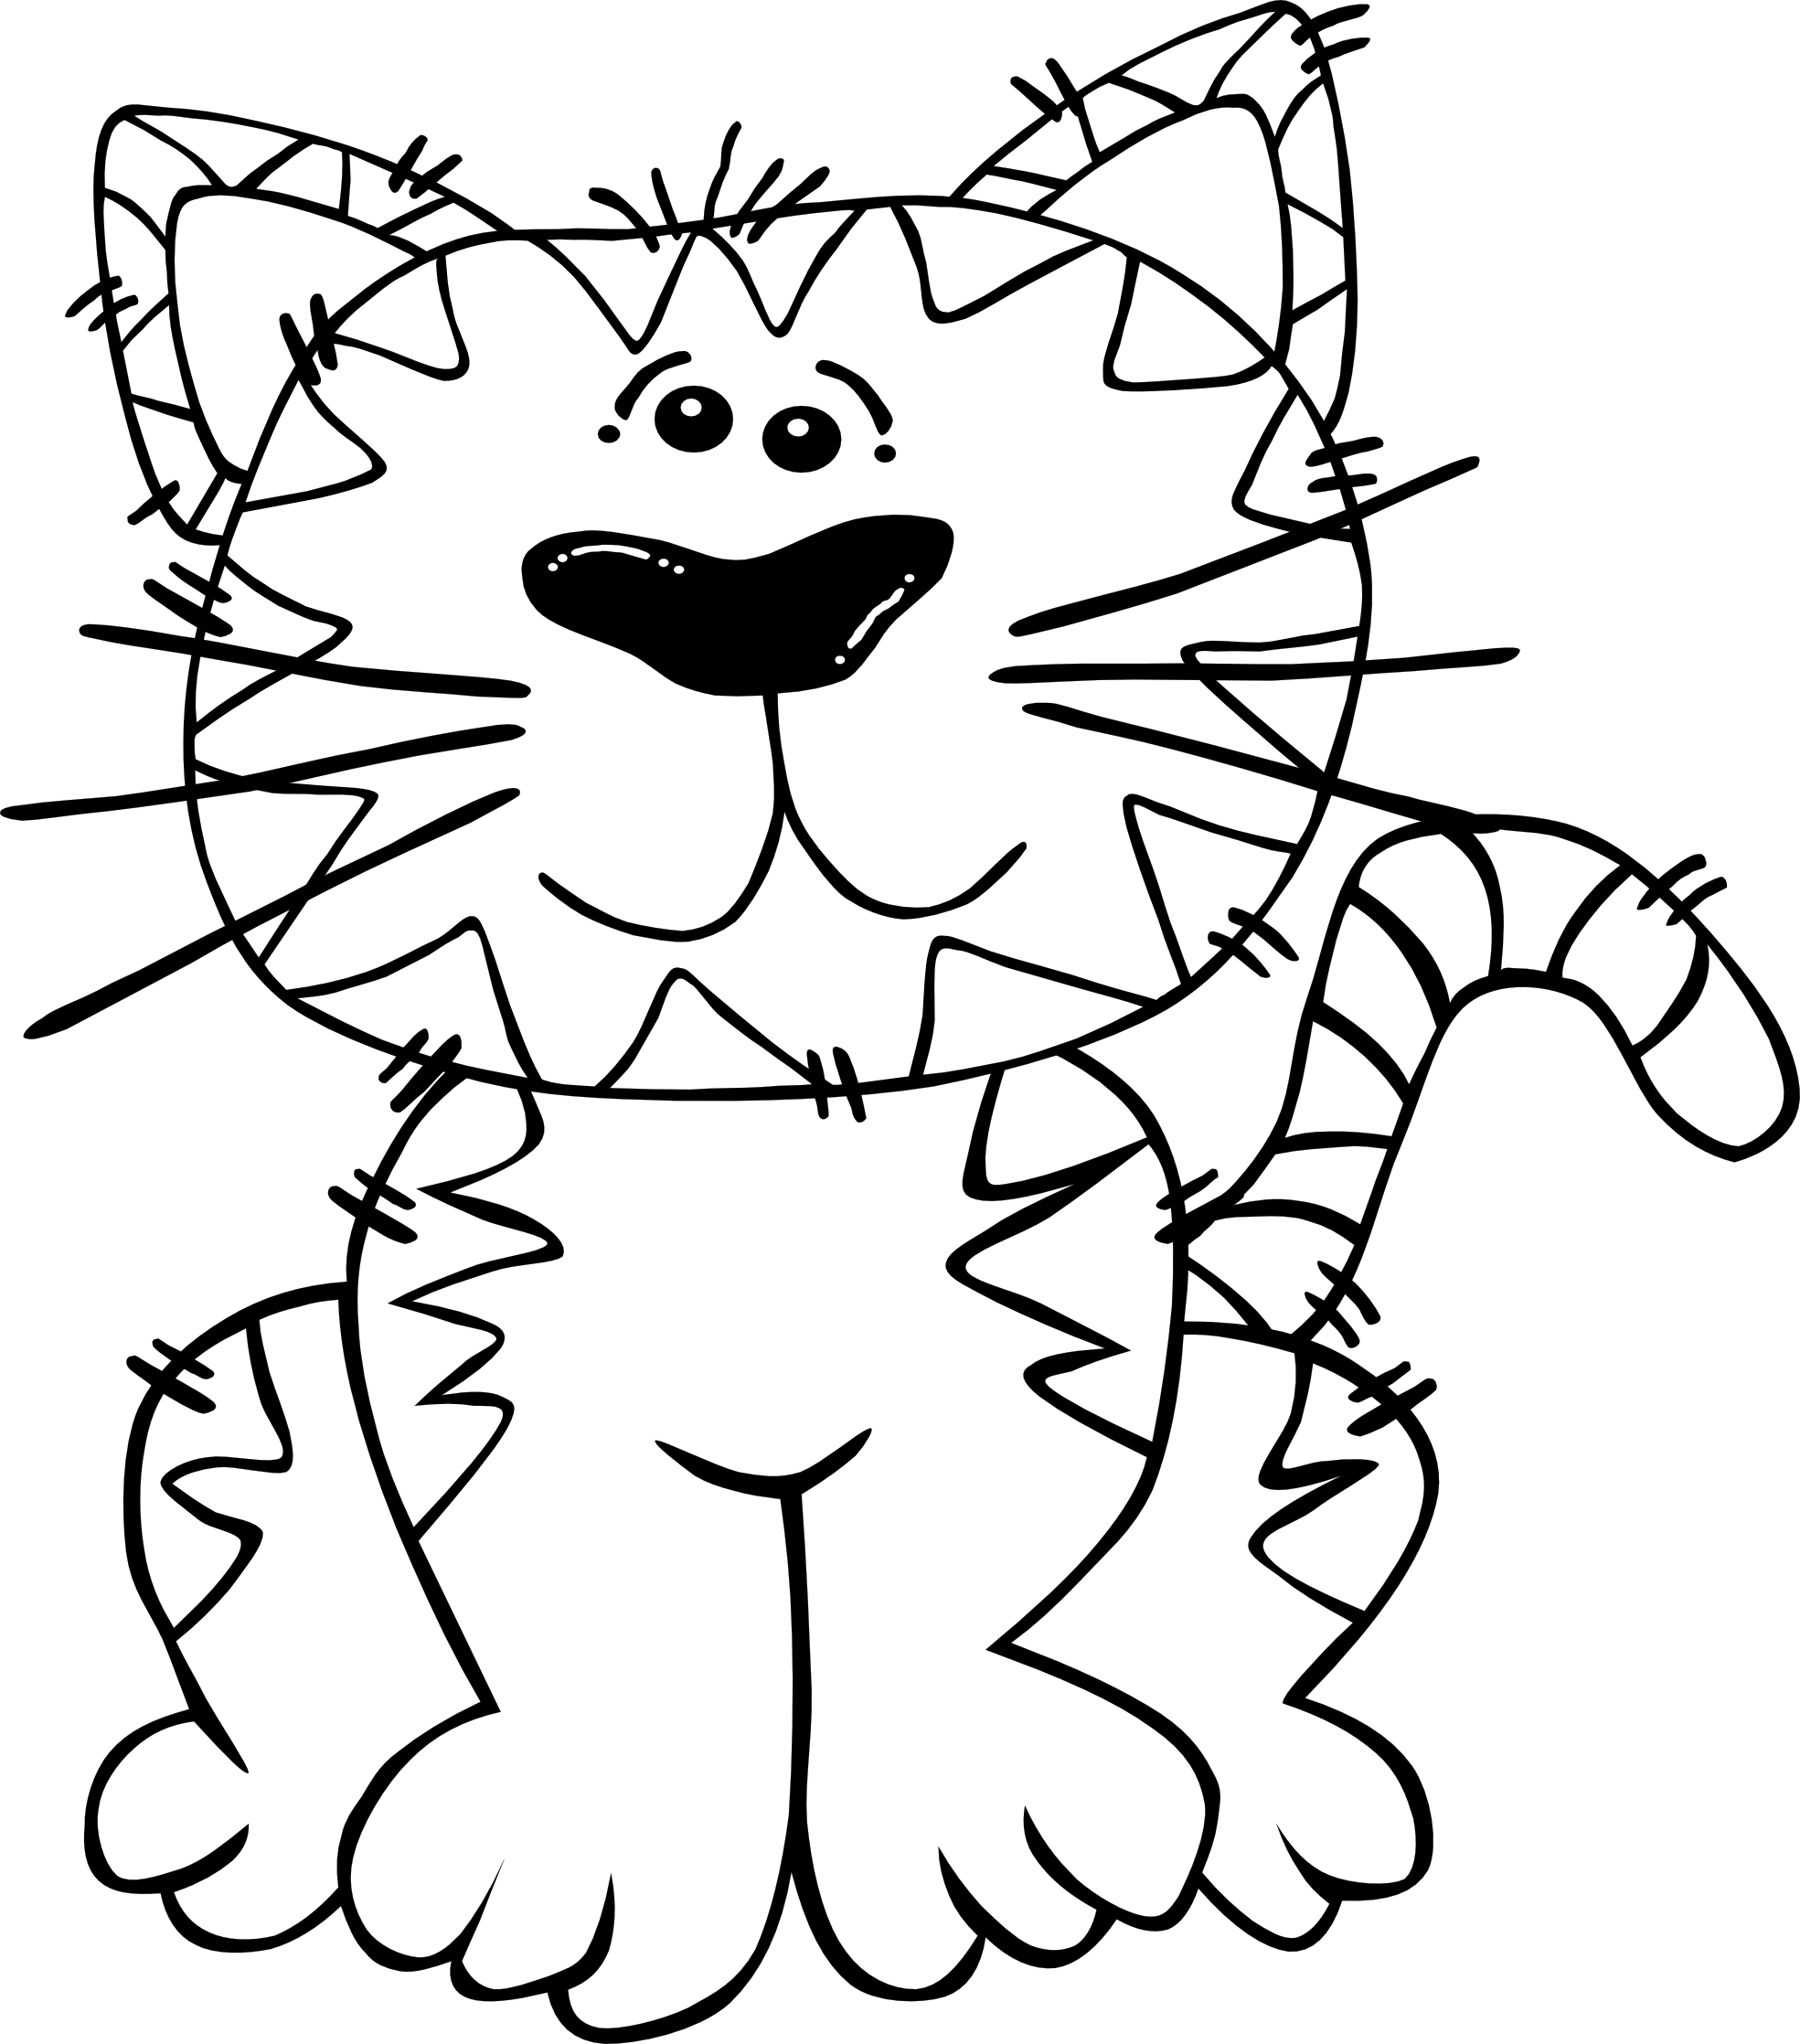 Clipart cat black and white. Dog clip art panda